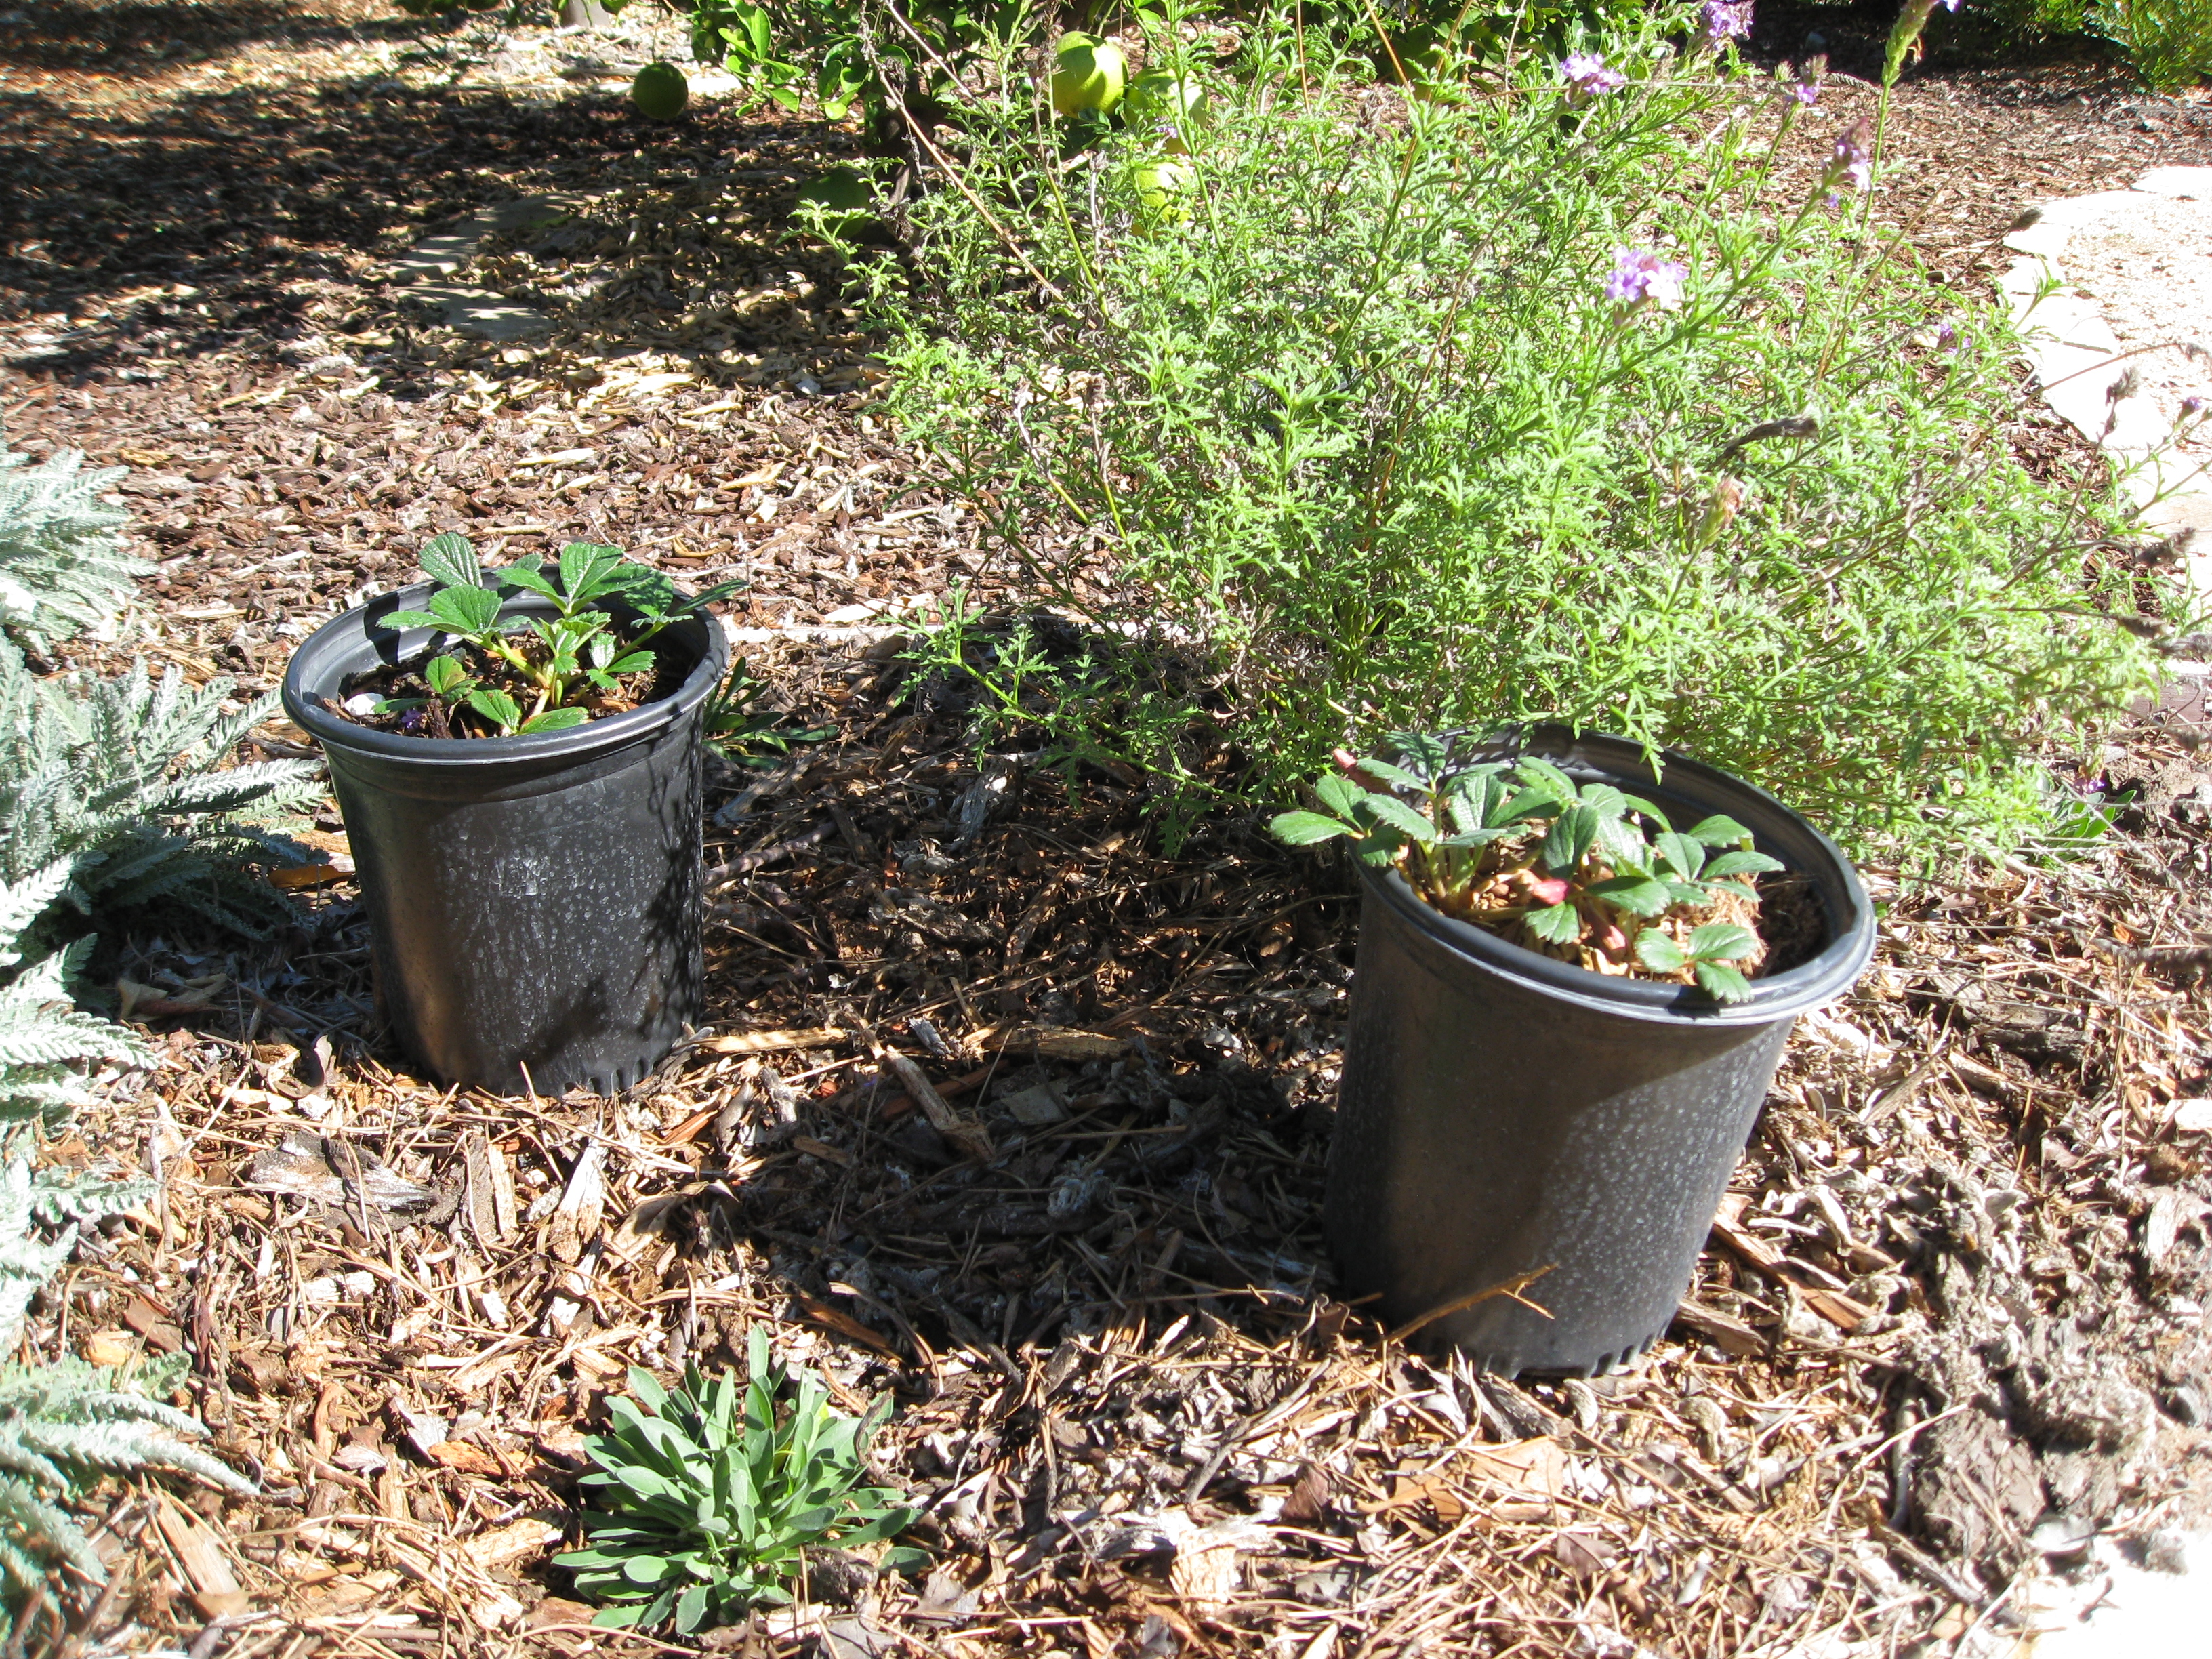 Fragaria chiloensis awaits planting next to newly planted limonium californica and year-old verbena liliacina.